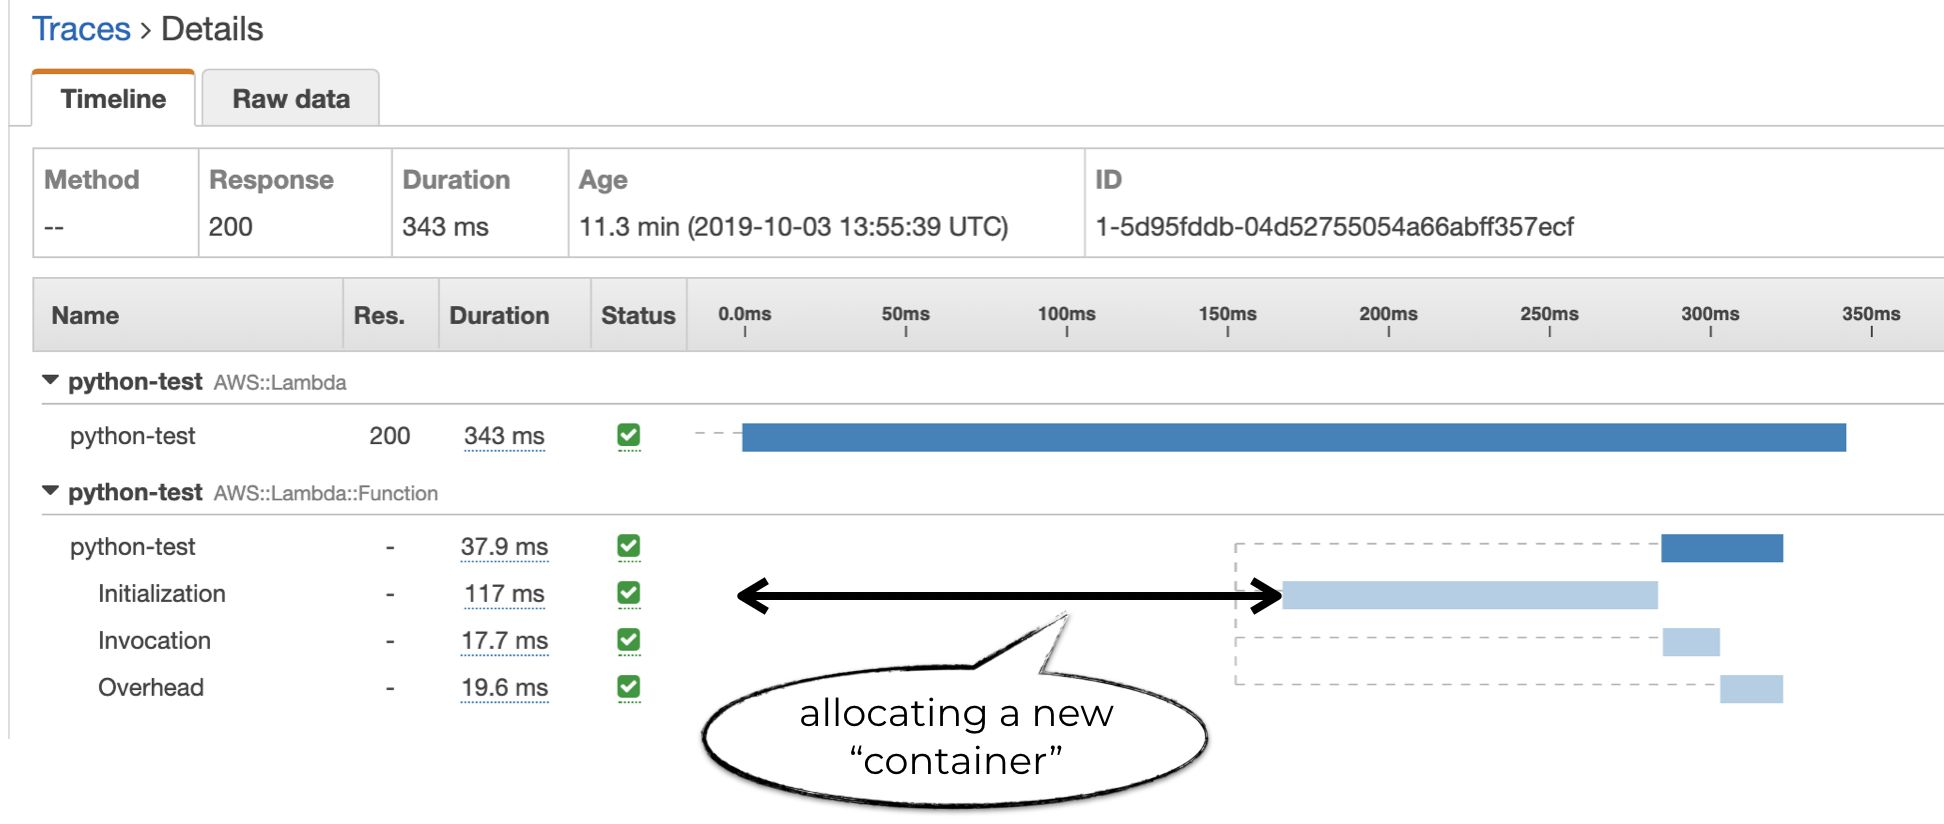 The unlabelled section before the Initialization subsegment is the time it takes for AWS to allocate a new container